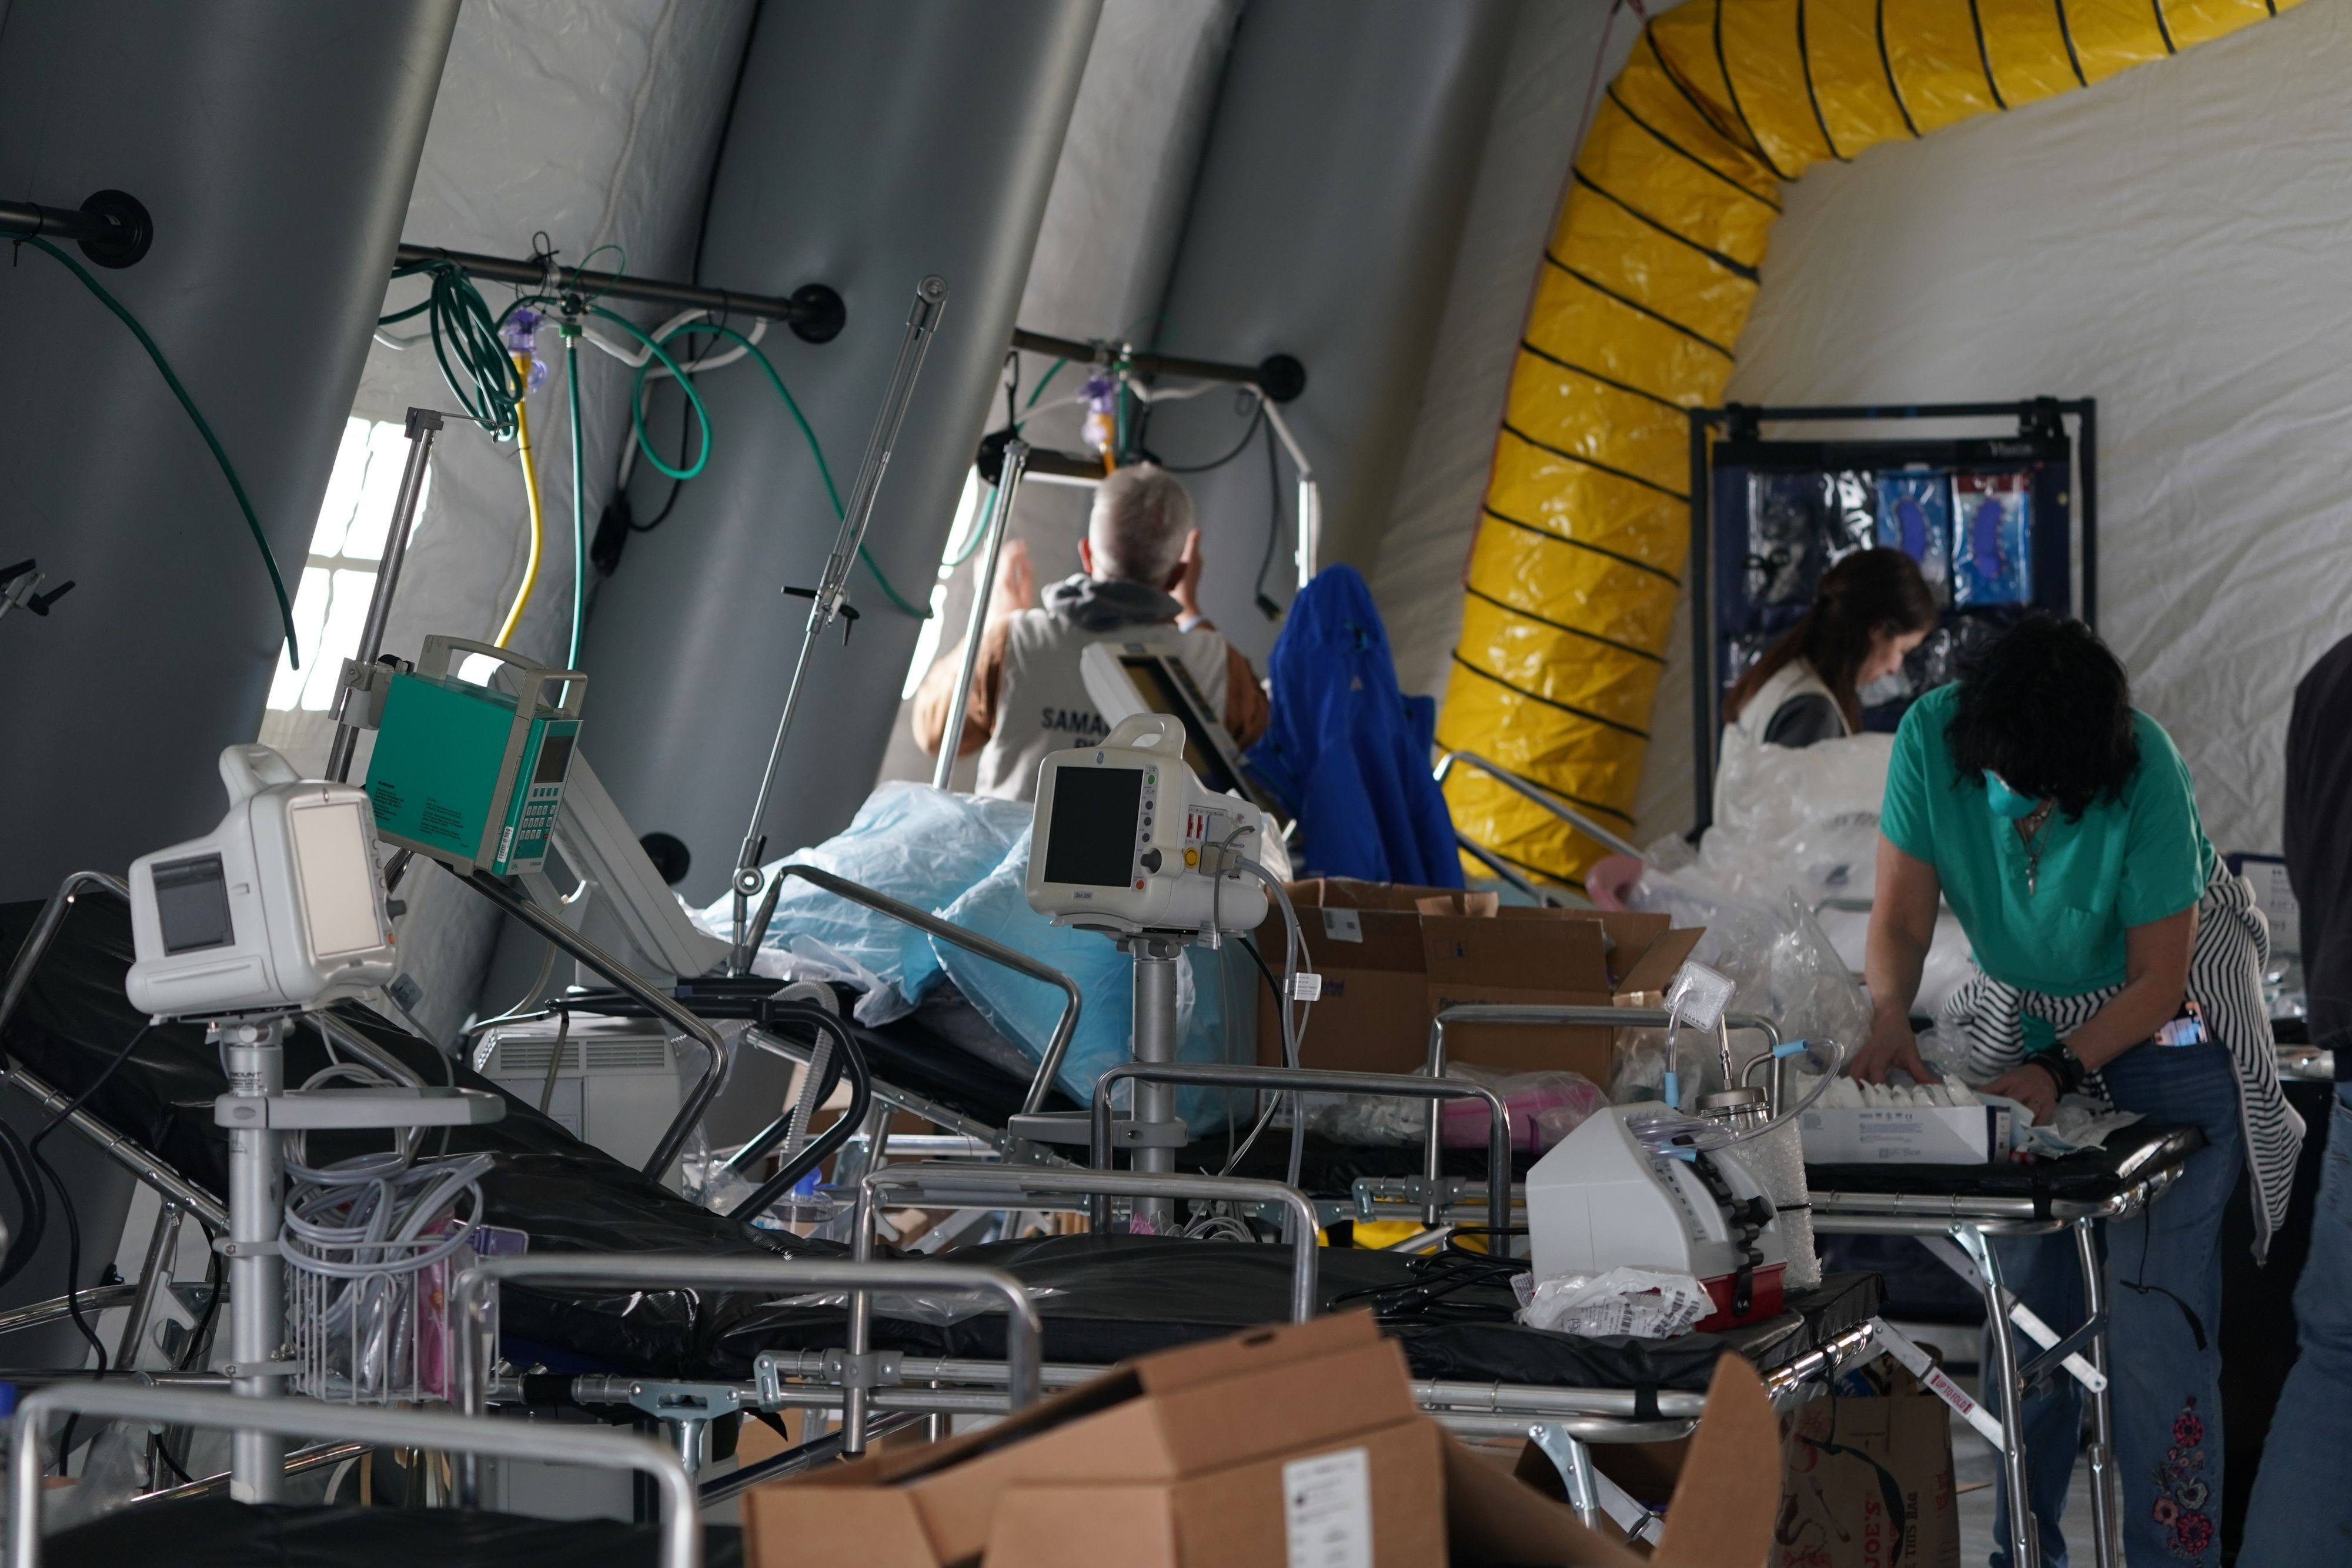 Medical supplies and beds are seen inside a tent as volunteers from the International Christian relief organization Samaritans Purse. (Photo by BRYAN R. SMITH/AFP via Getty Images)